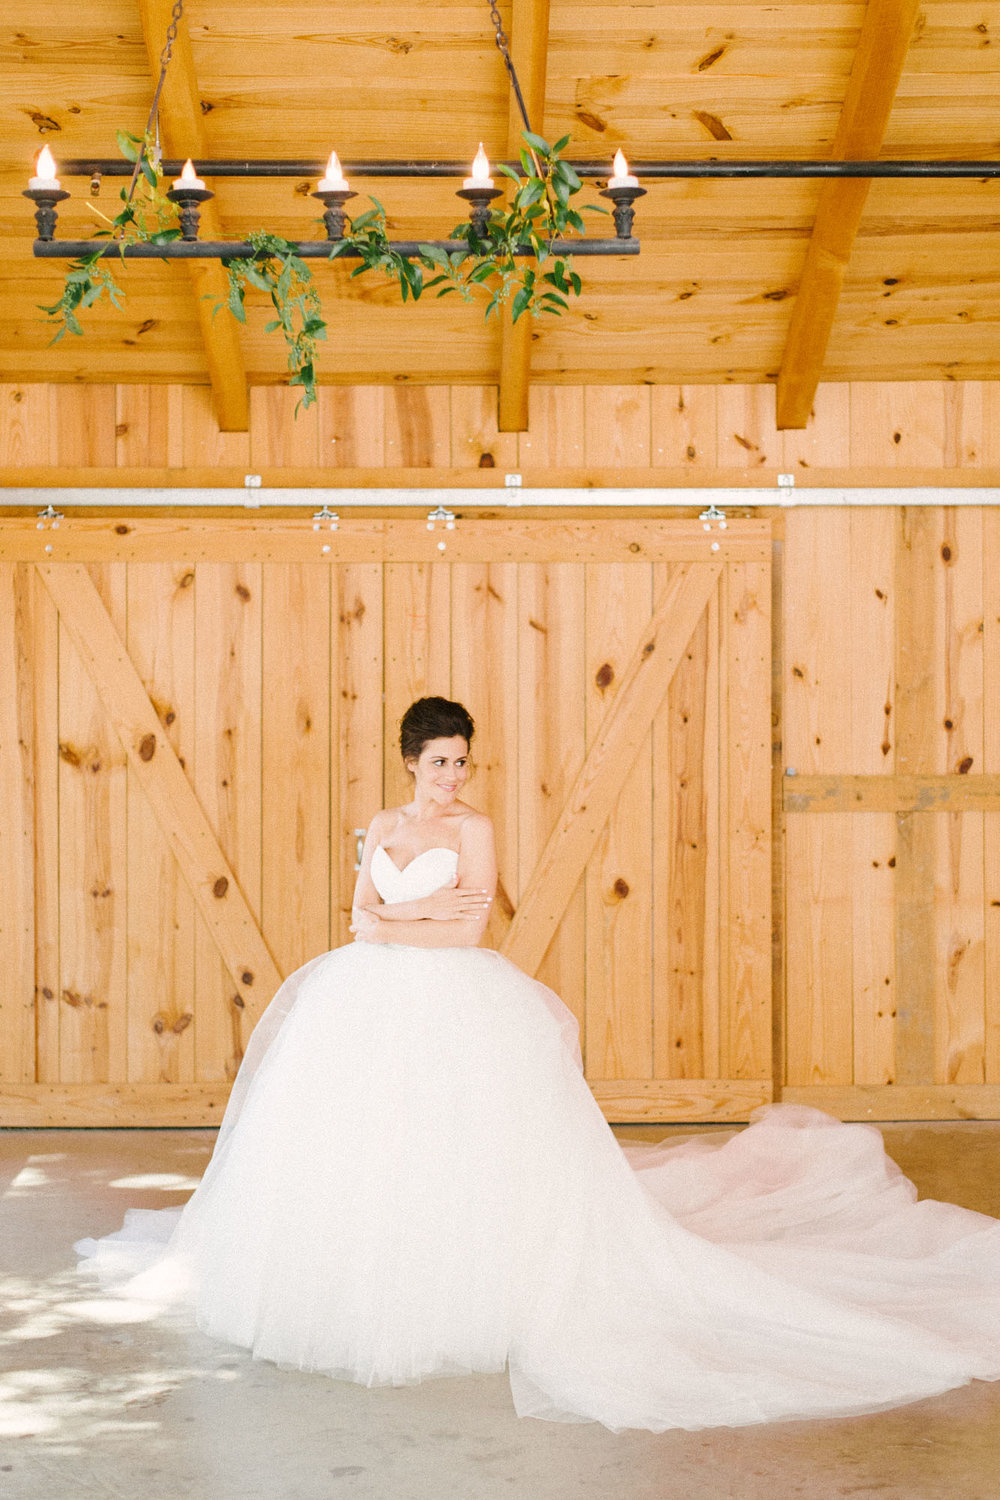 SM anna smith photography wedding photographer venue wedding planner-158.jpg